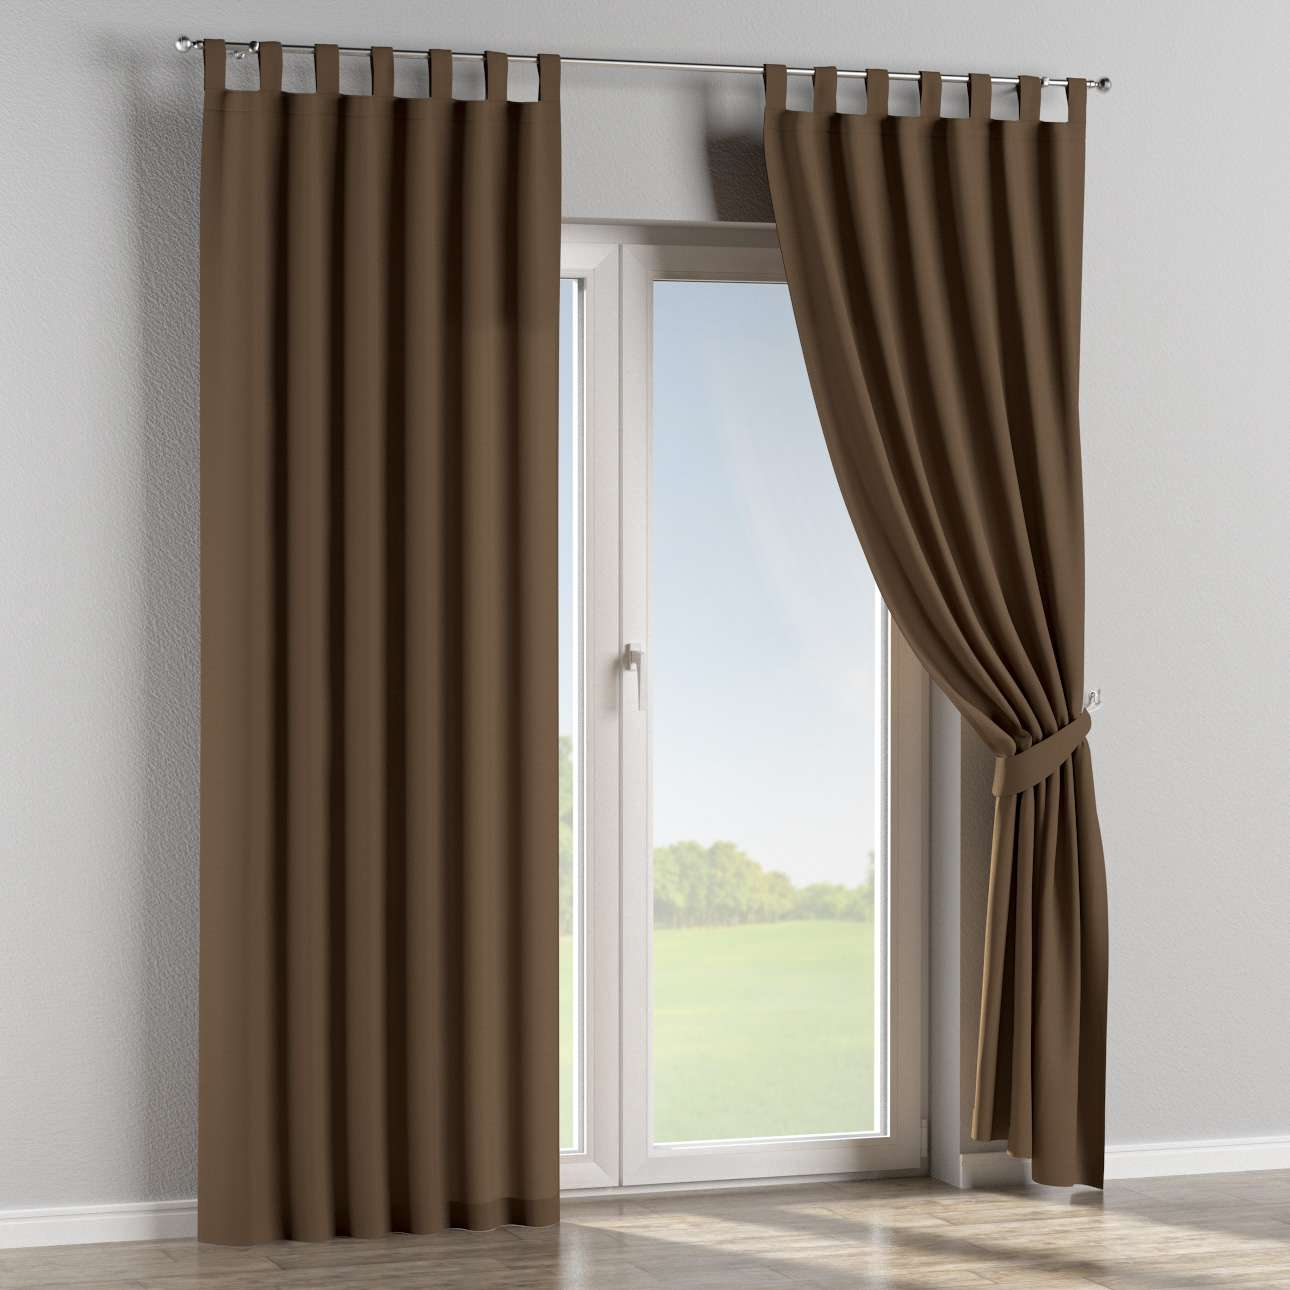 Tab top curtains 130 x 260 cm (51 x 102 inch) in collection Panama Cotton, fabric: 702-02